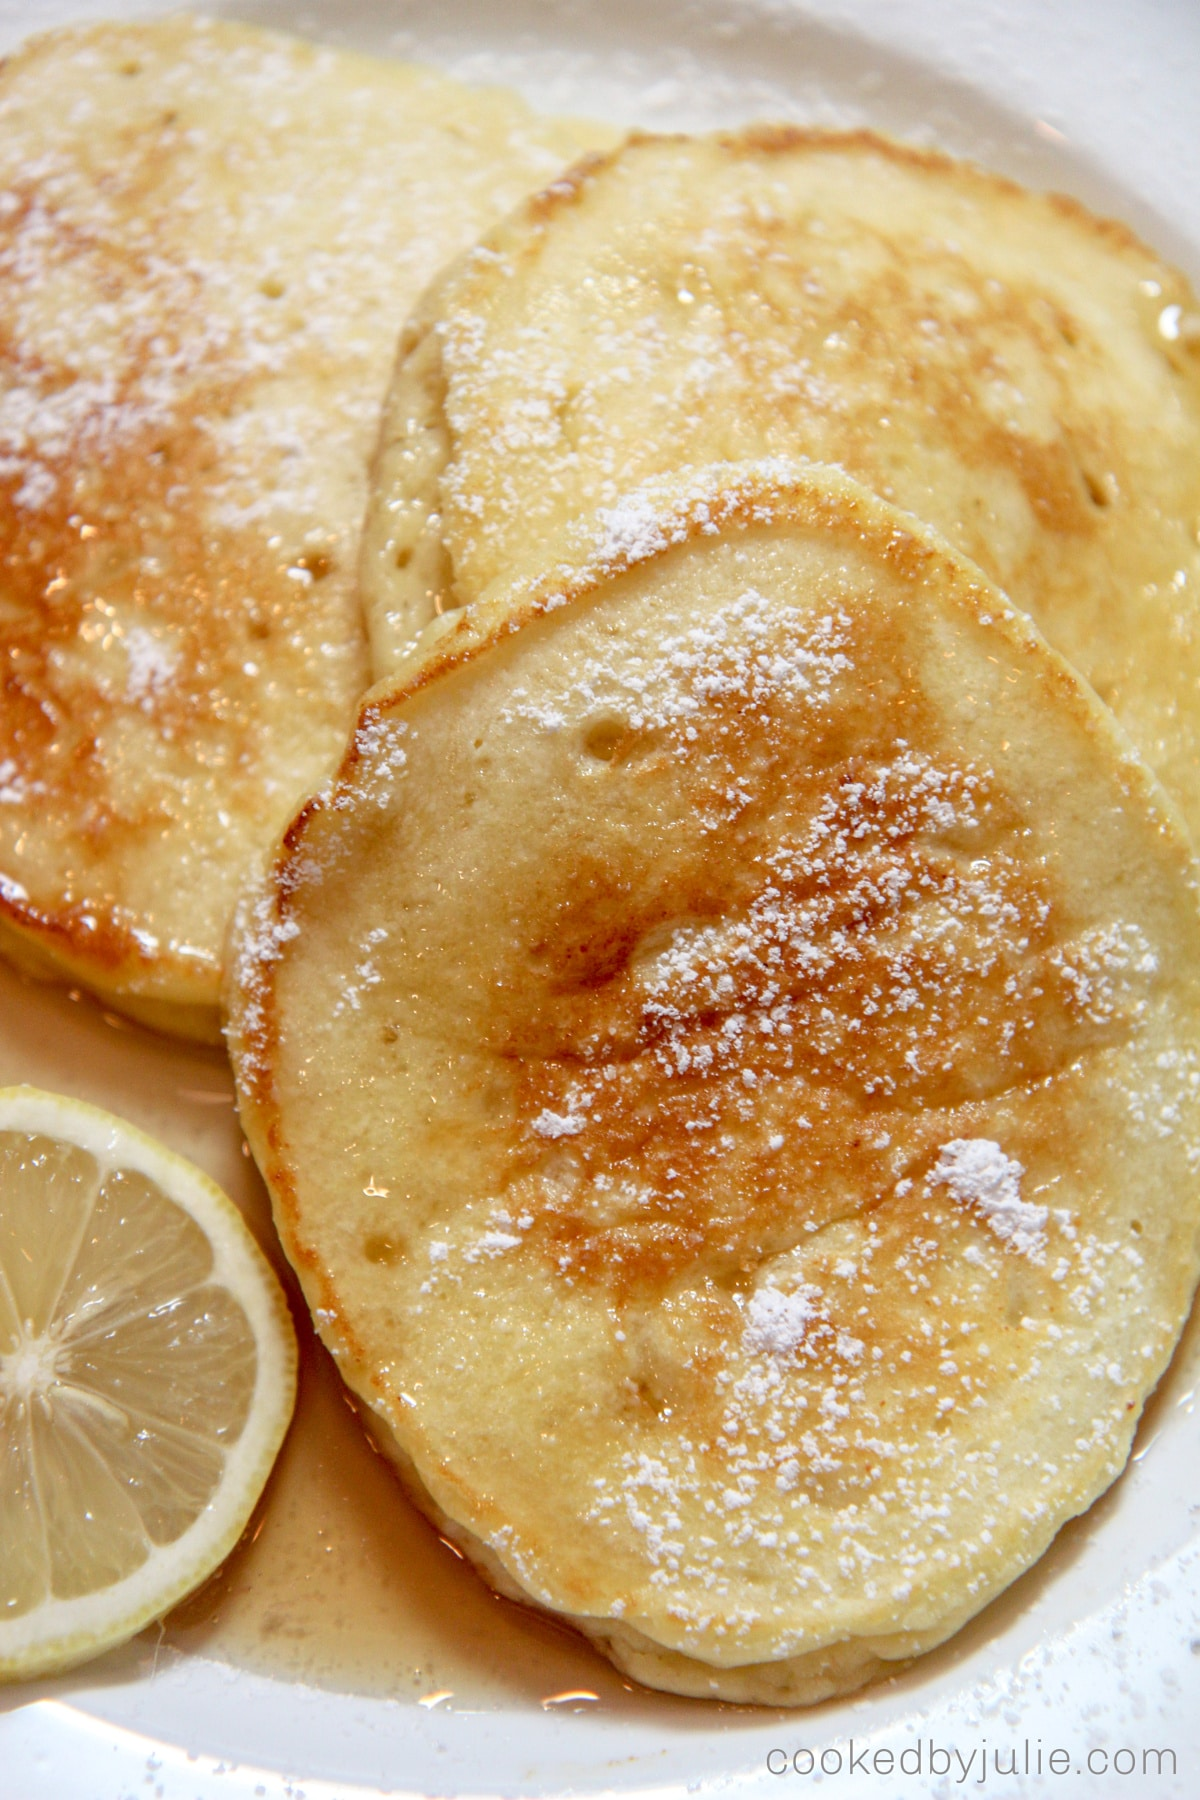 Three pancakes with powdered sugar, lemon slices, and syrup on a white plate up close.